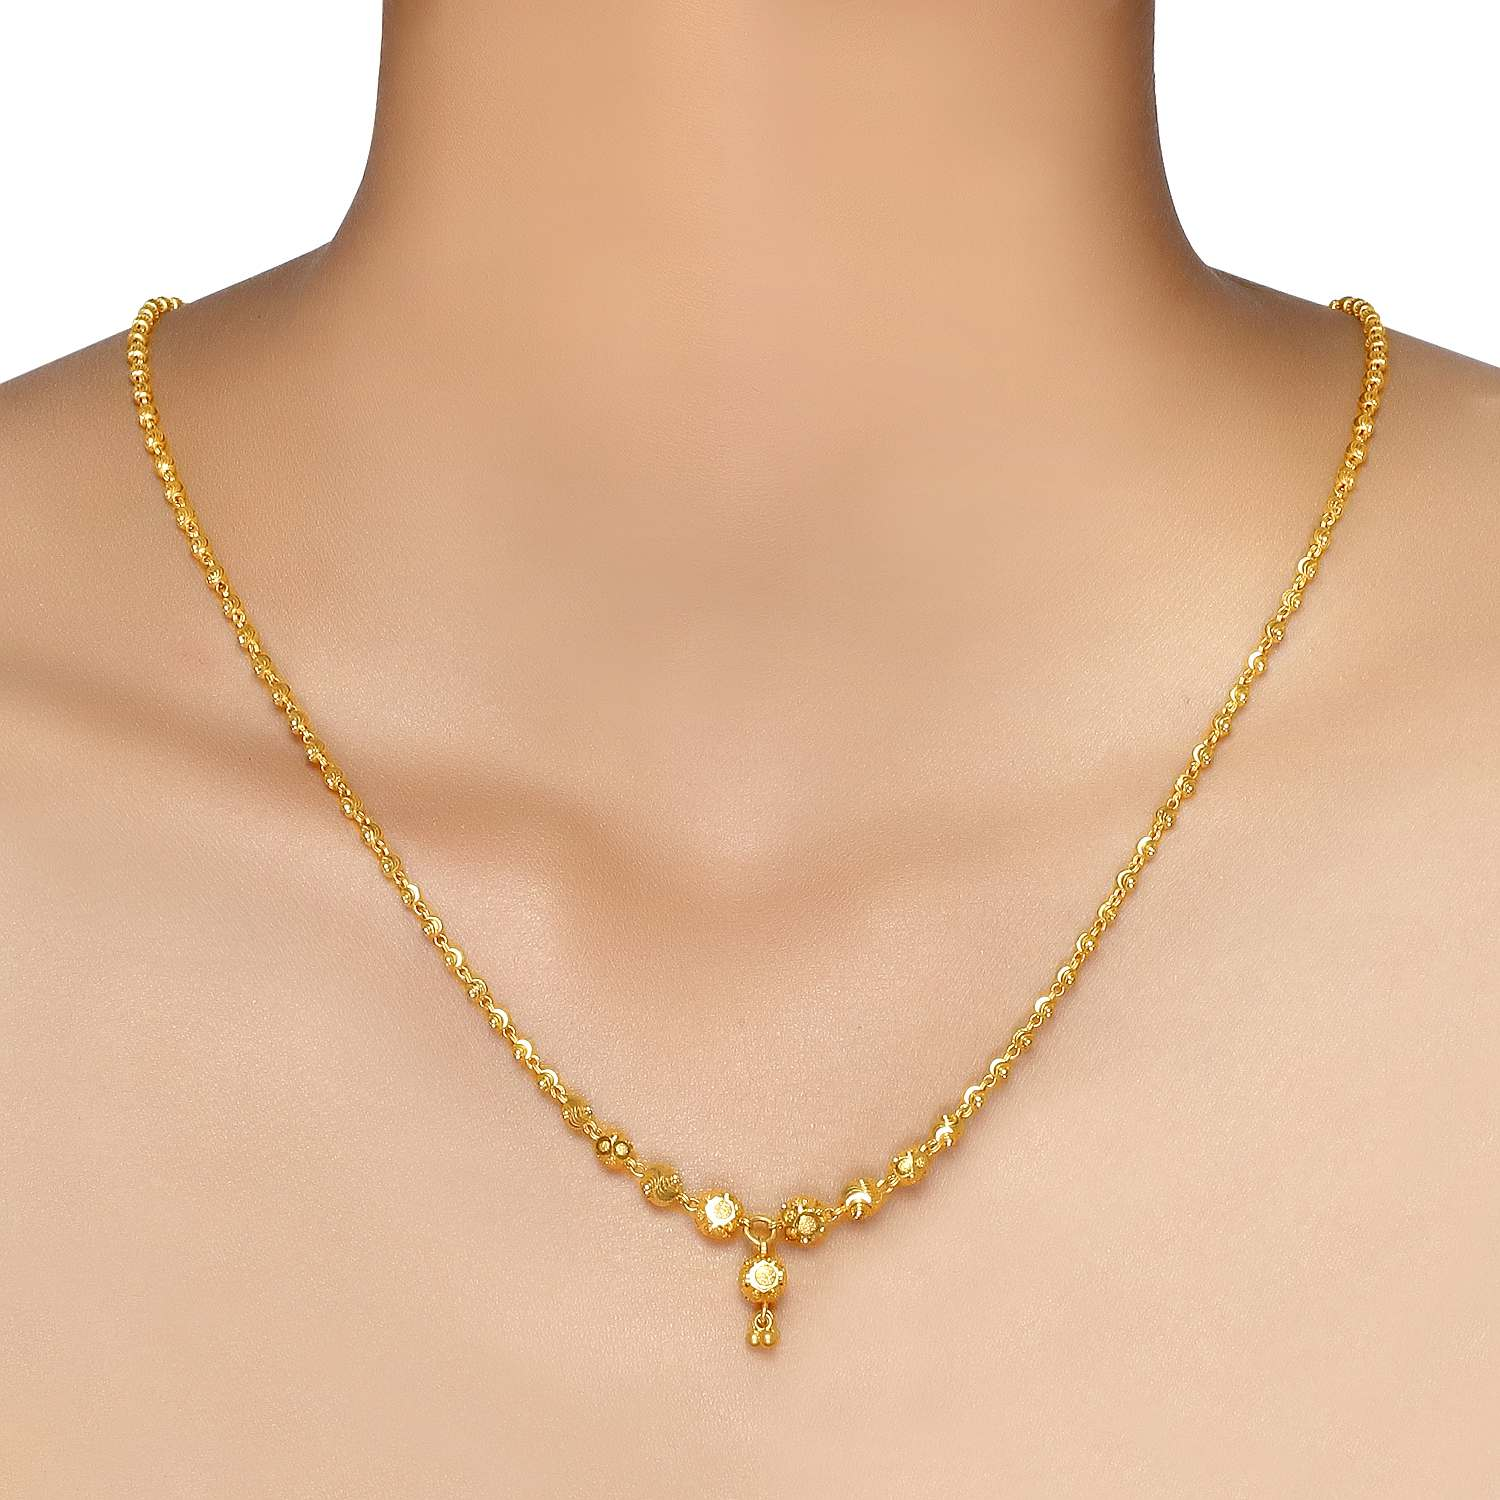 Buy Classy Yellow Gold Tanishq Necklace CDBMAA00 At Best